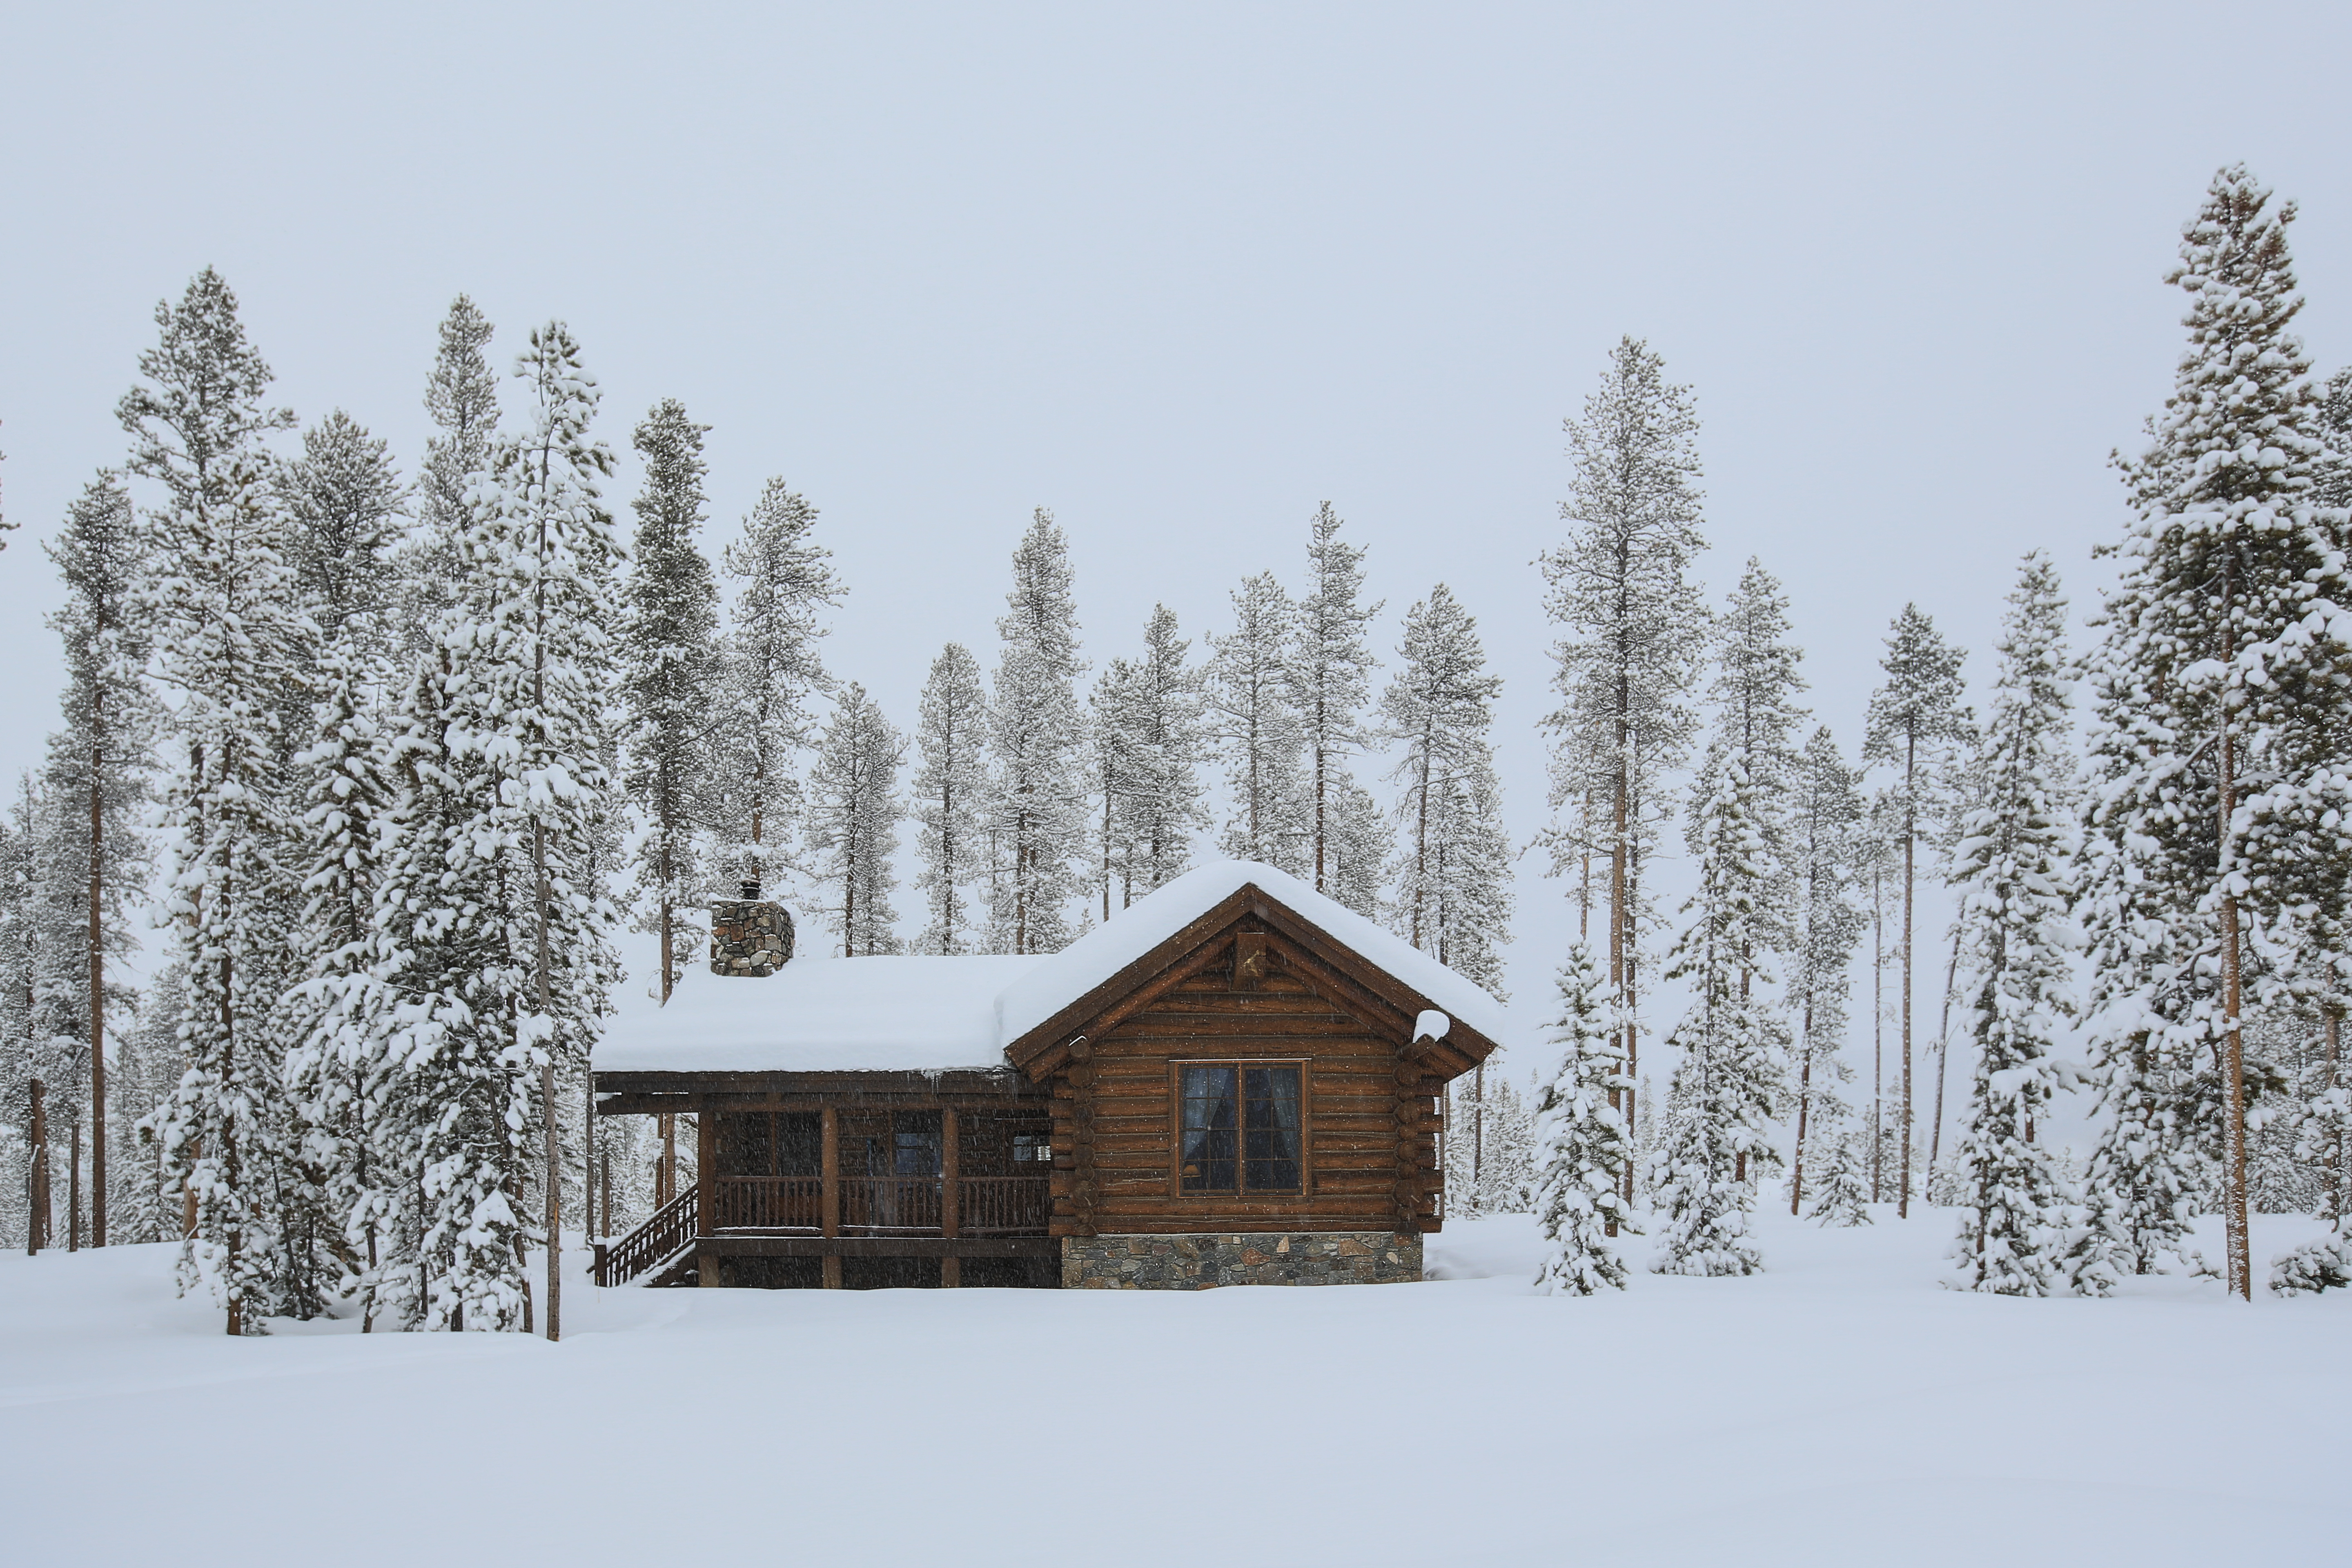 Log Cabin in the forest and covered snow